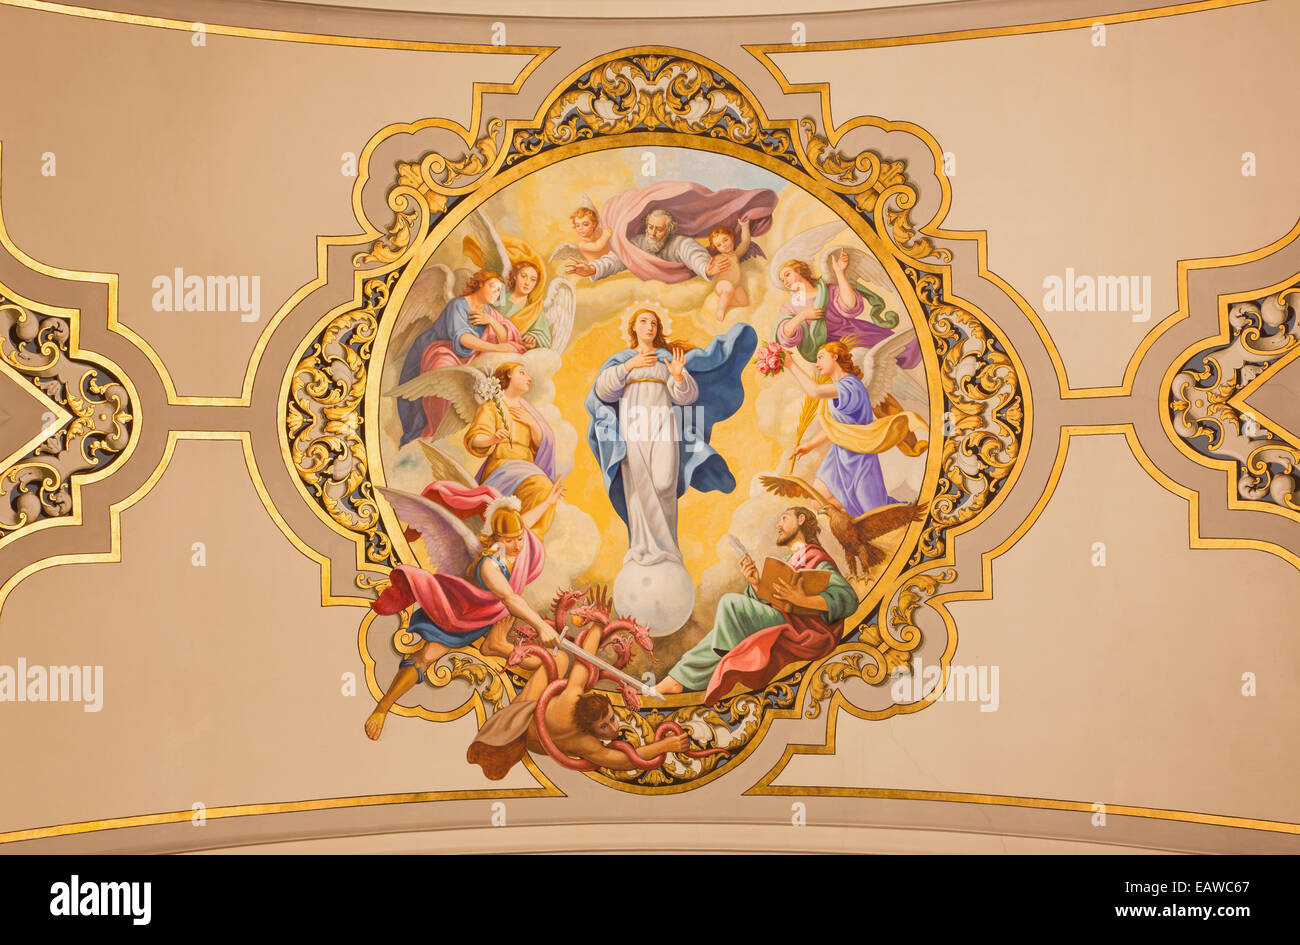 Seville - The fresco Virgin Mary as Immaculate conception on the ceiling in church Basilica de la Macarena - Stock Image